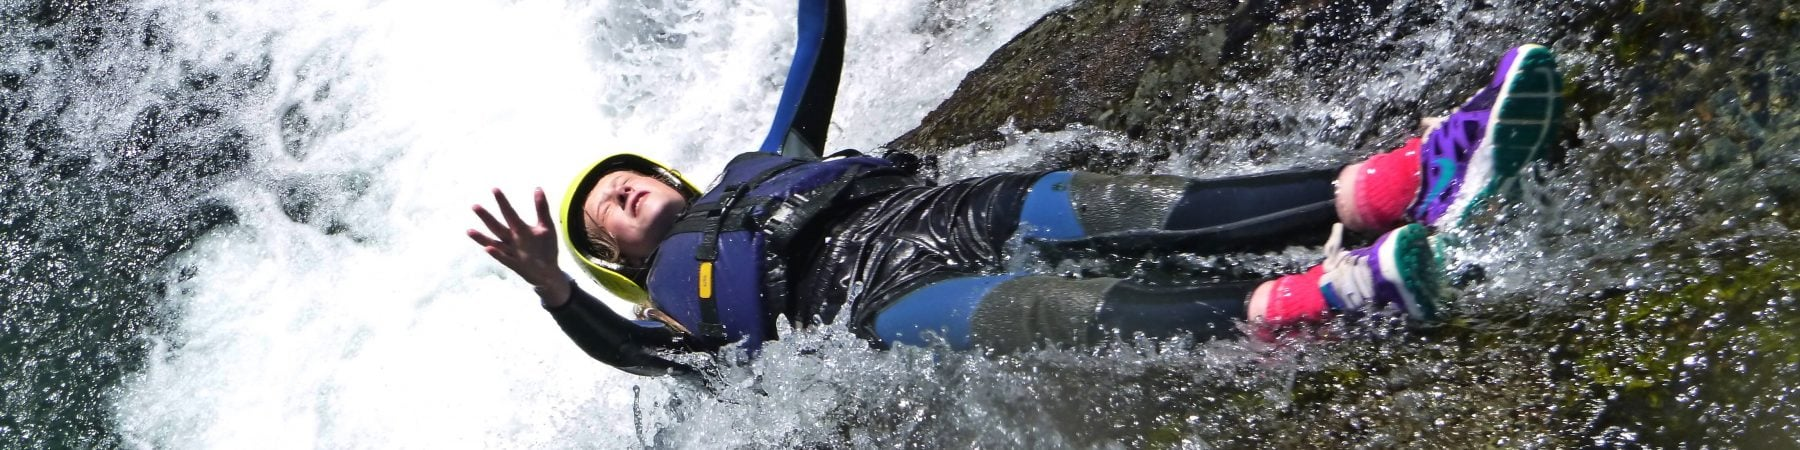 canyoning in wales uk